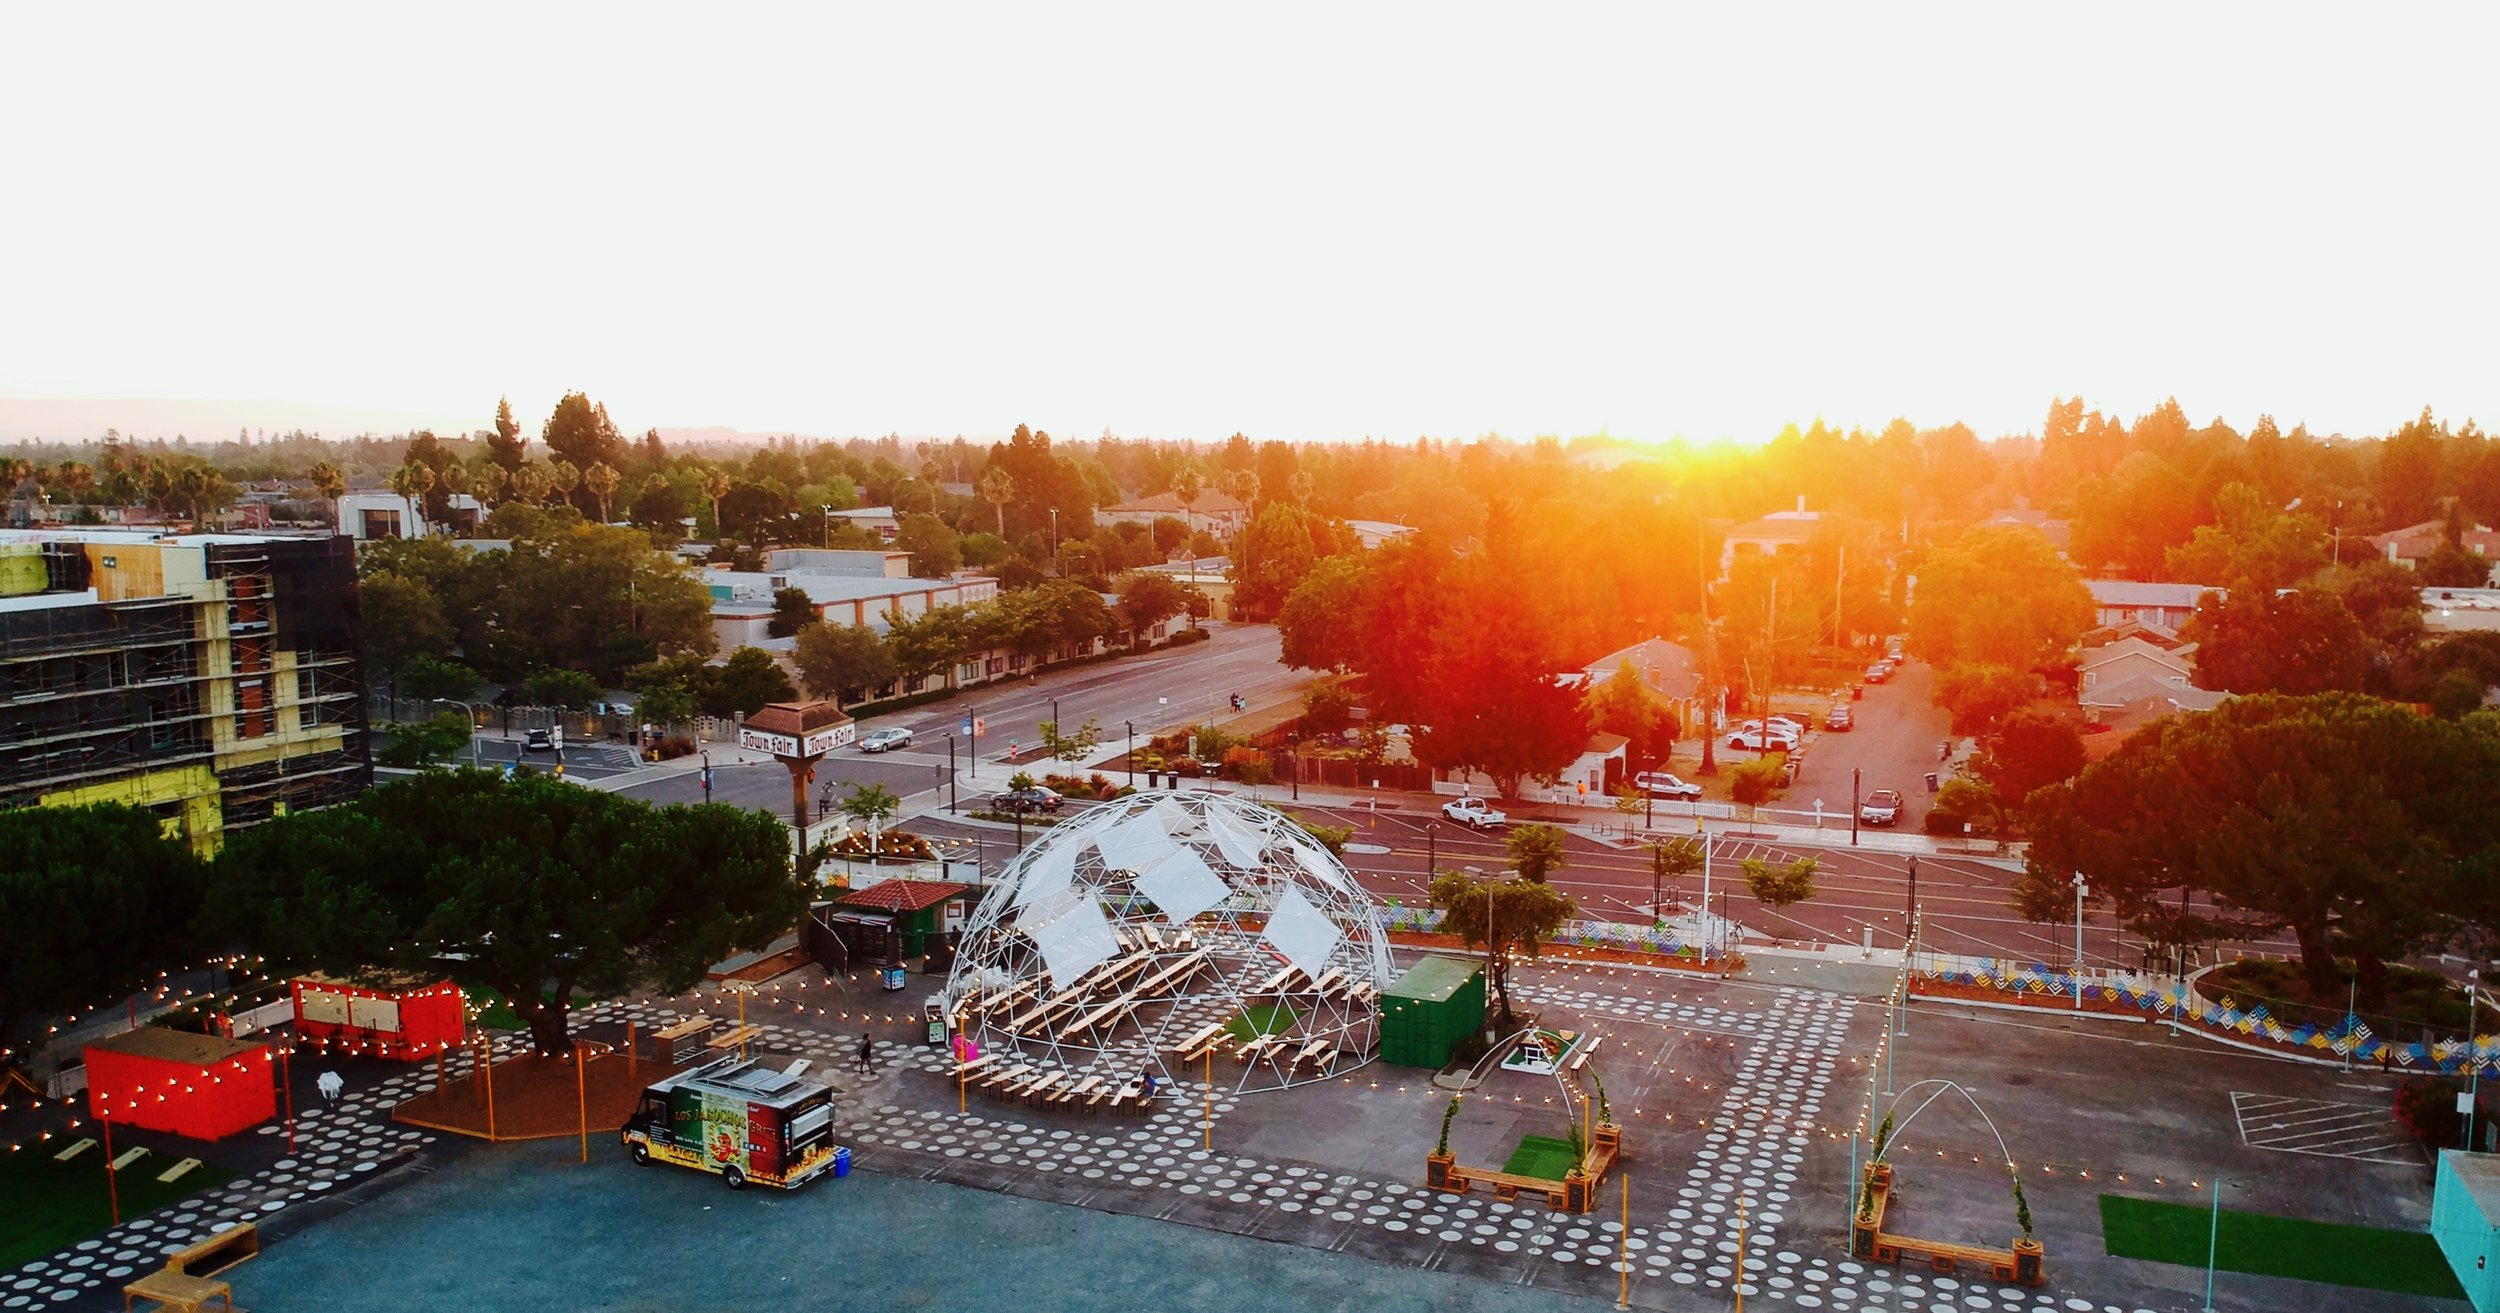 Town-Fair-Plaza_Fremont_drone-view-01.jpg